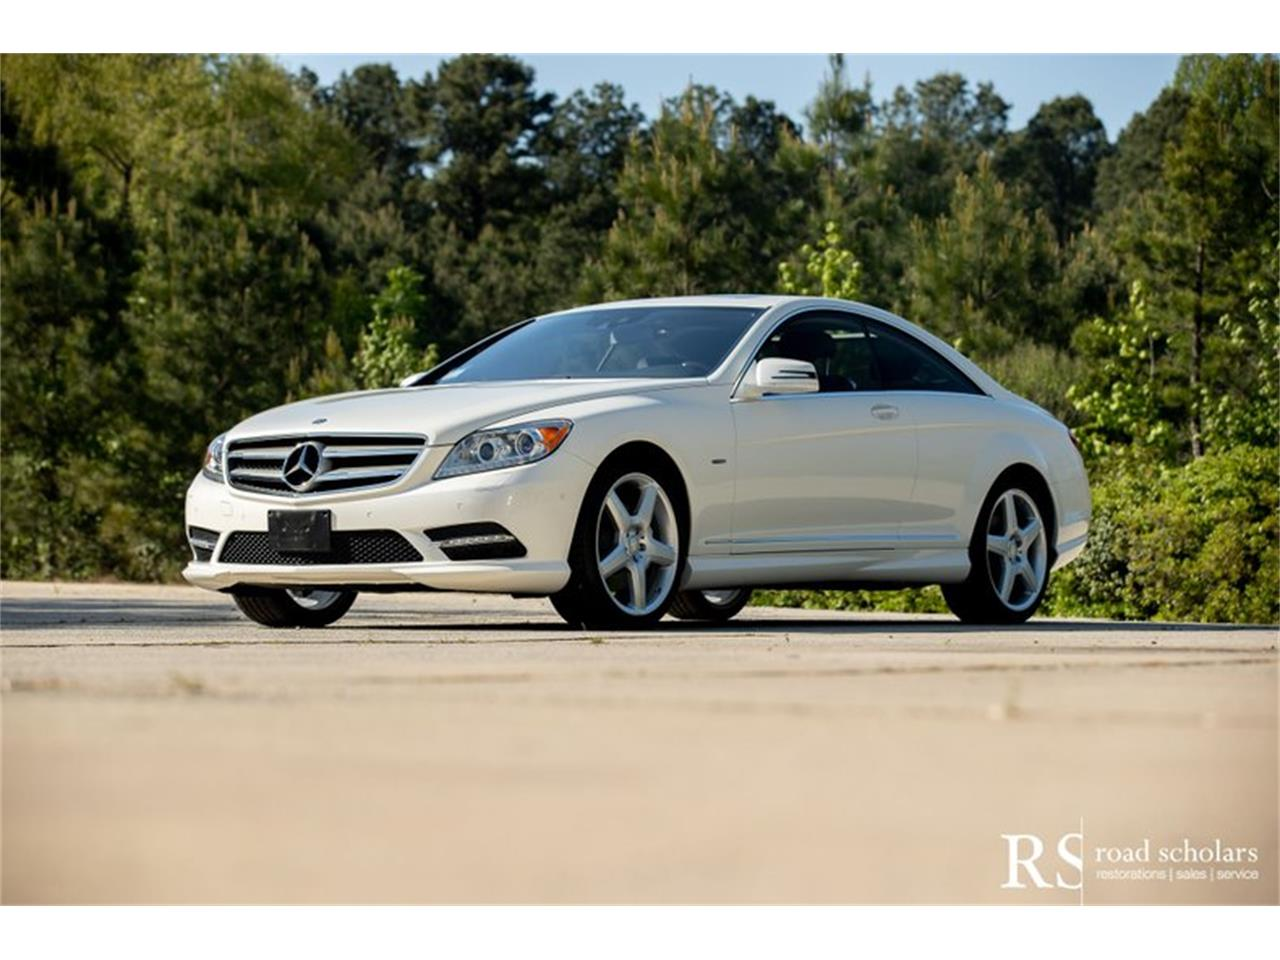 for sale 2012 mercedes-benz cl550 in raleigh, north carolina cars - raleigh, nc at geebo